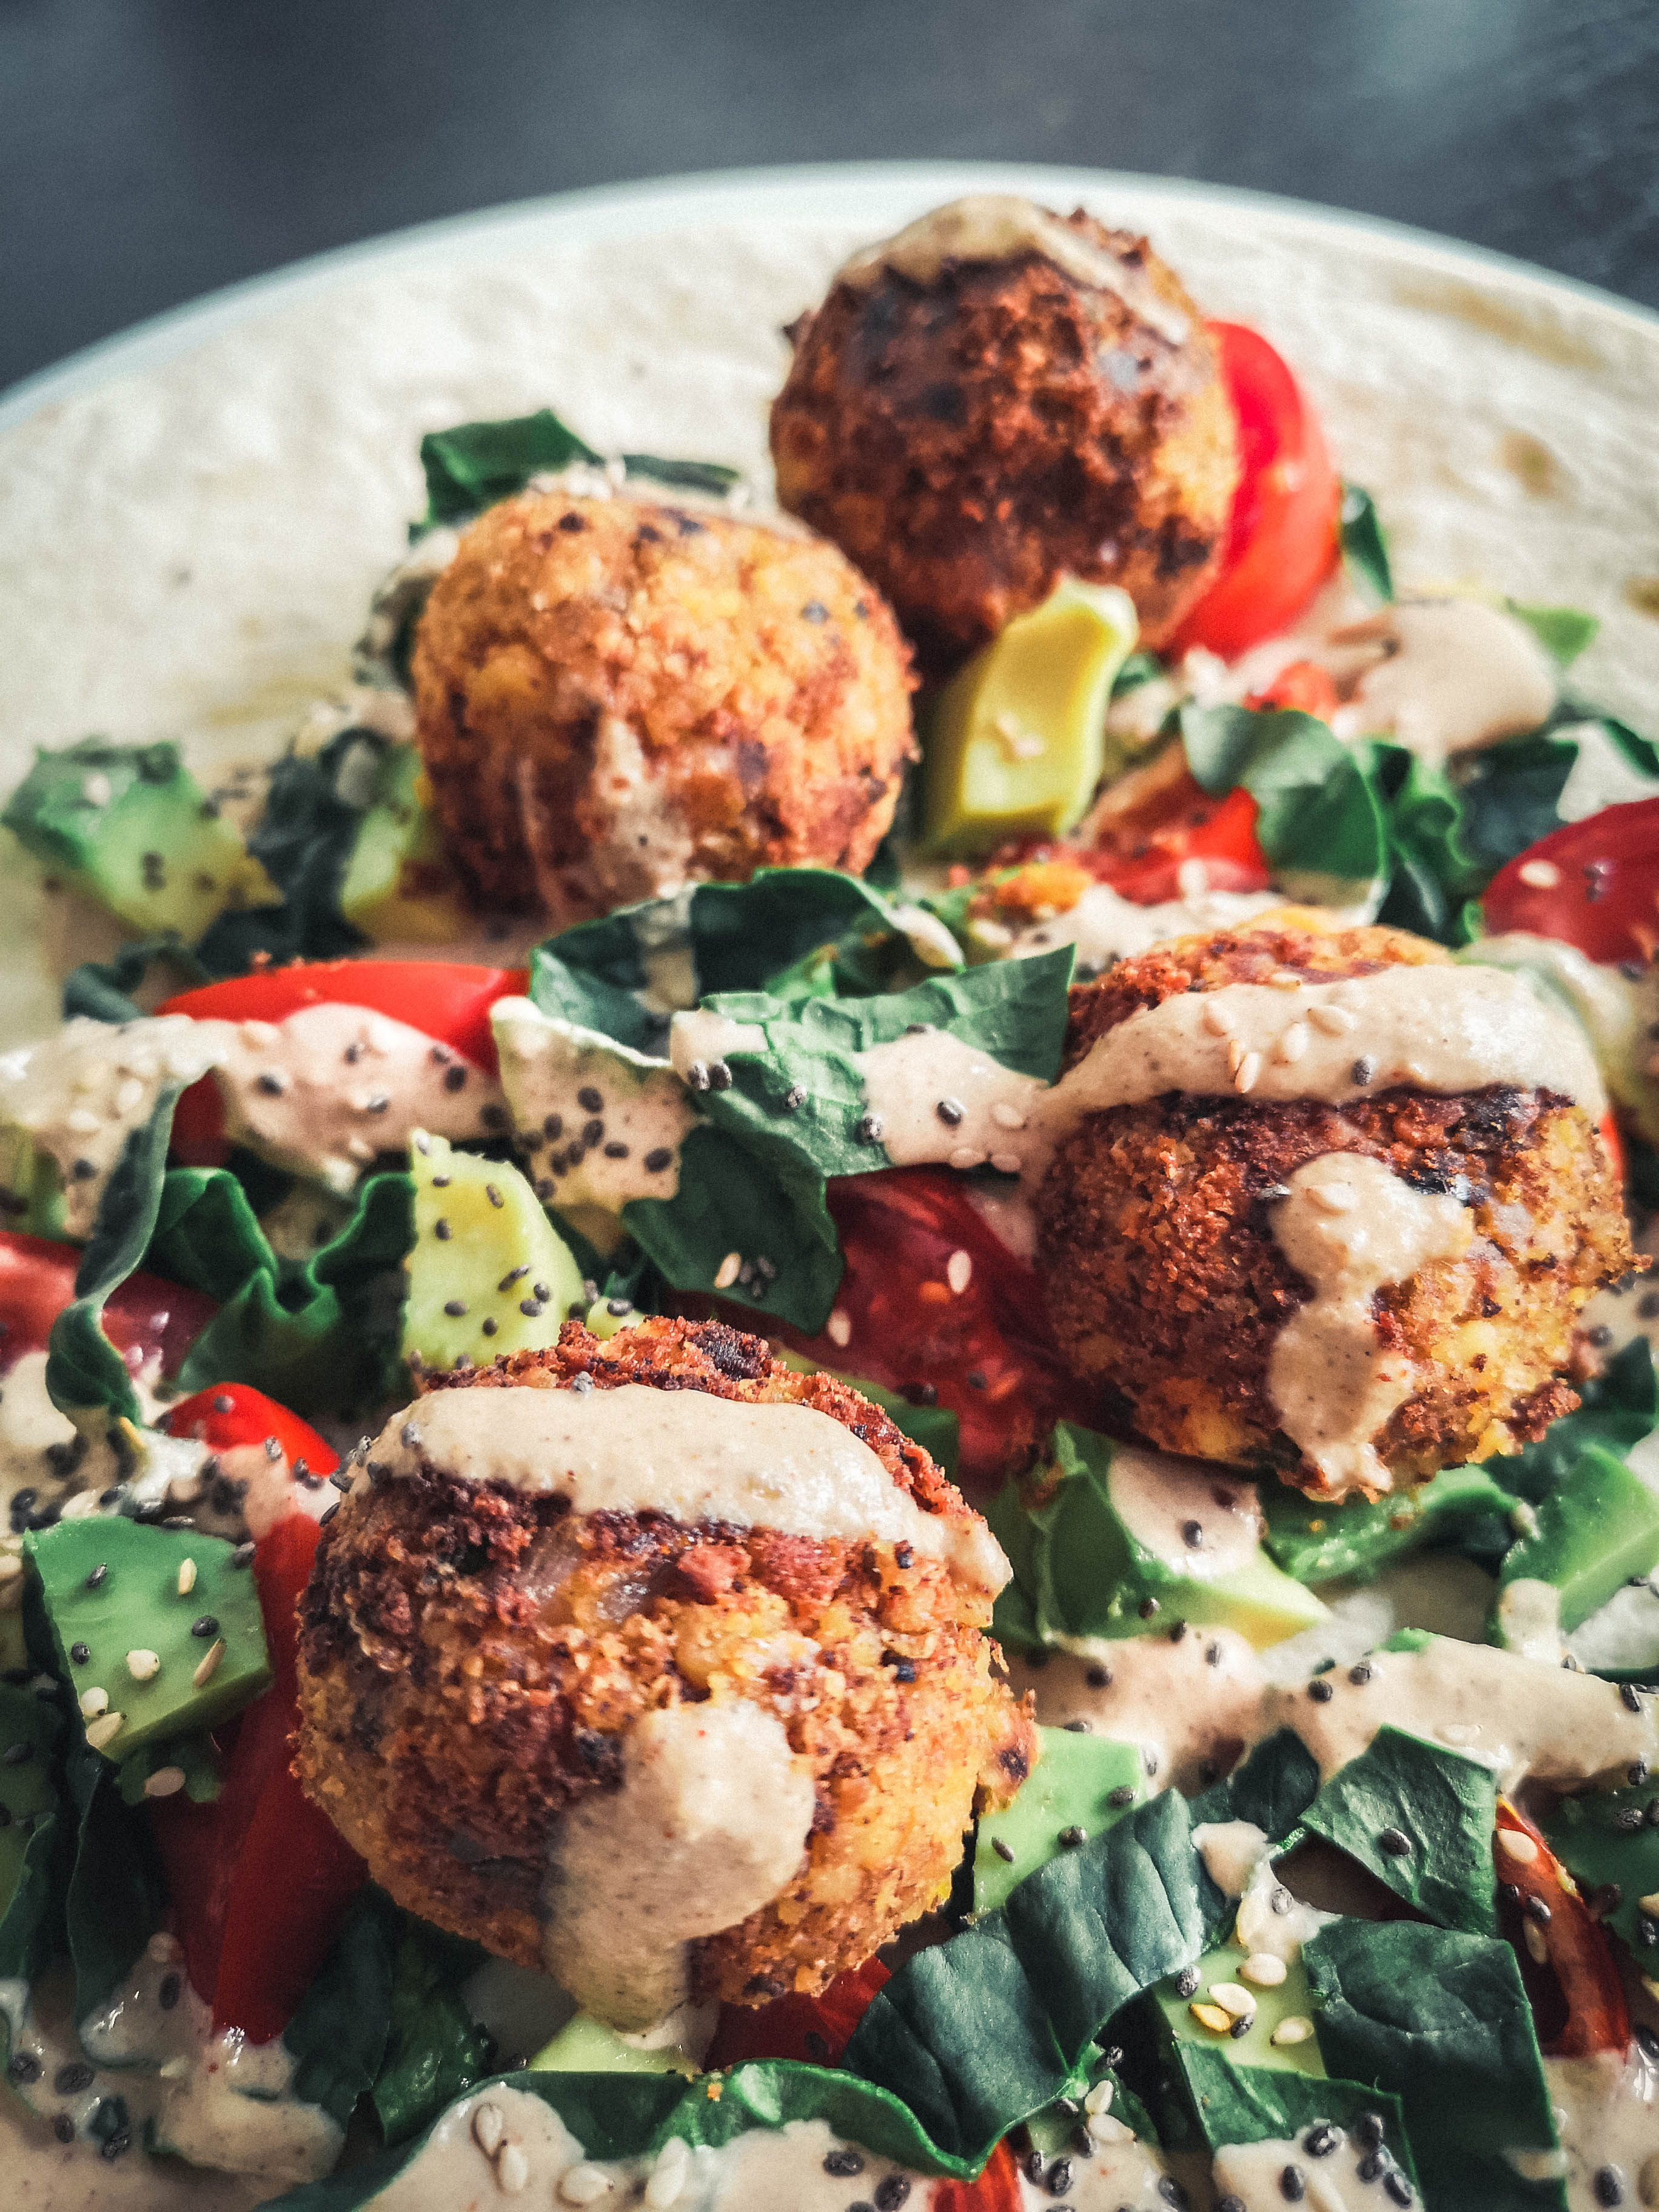 Falafel wraps and its sauce